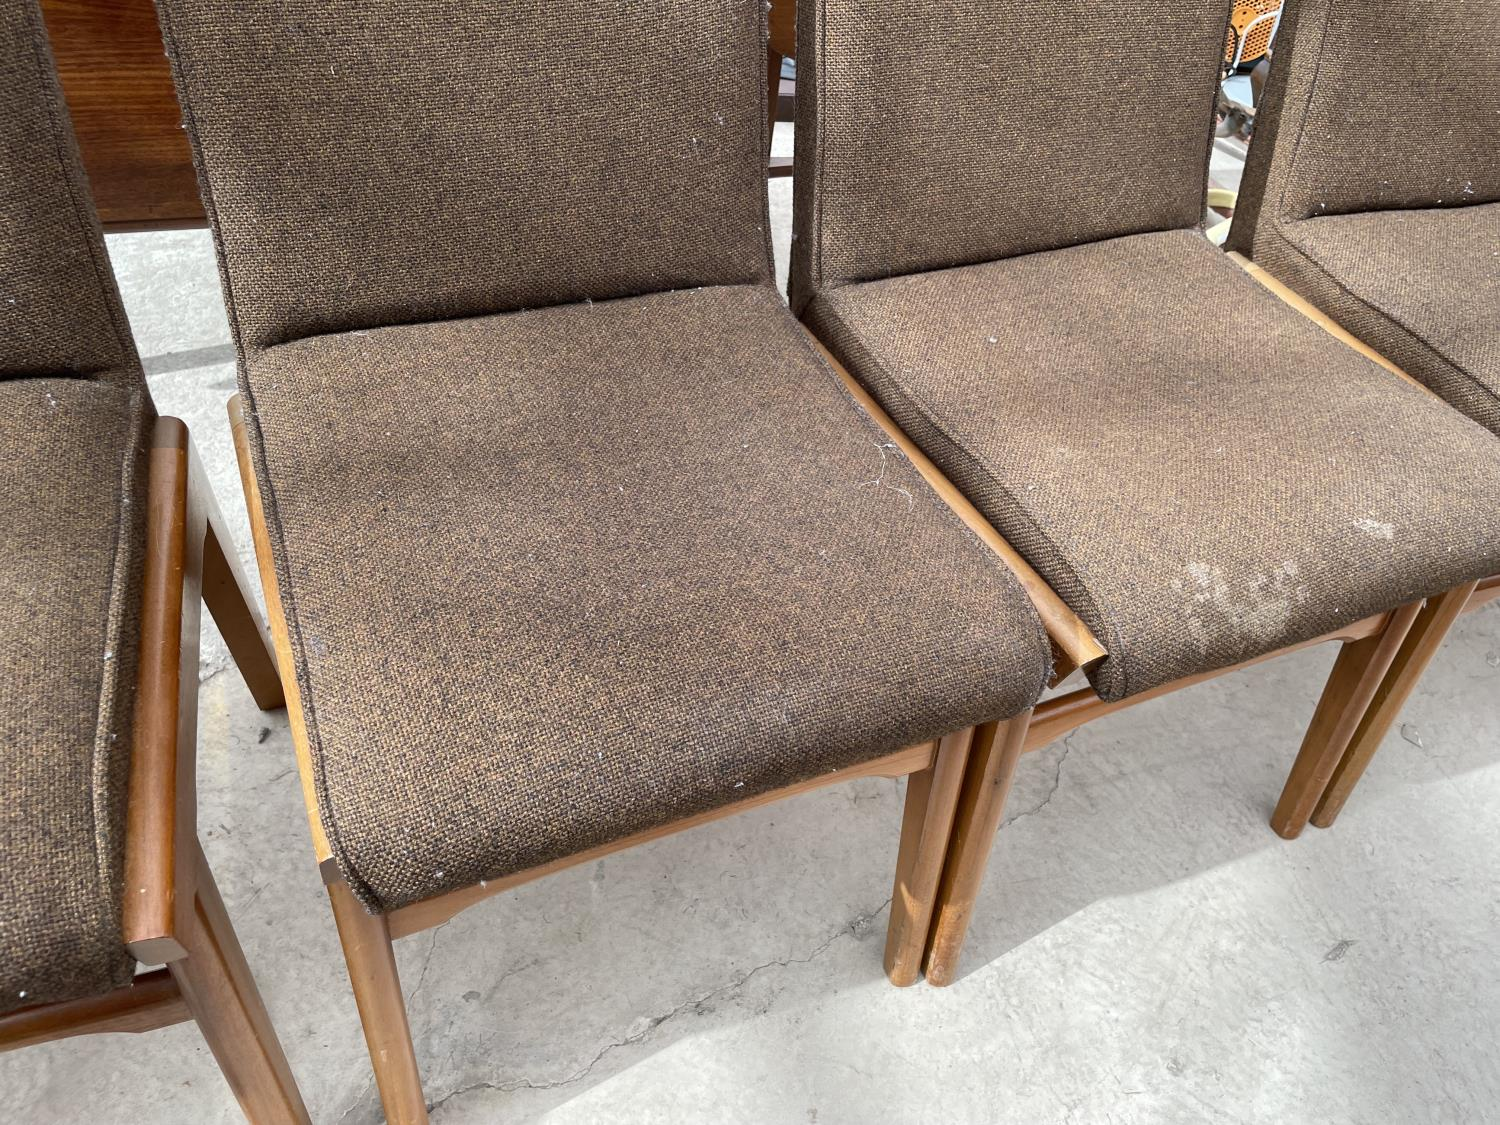 A SET OF SIX RETRO DINING CHAIRS WITH UPHOLSTERED BACKS AND SEATS - Image 5 of 8